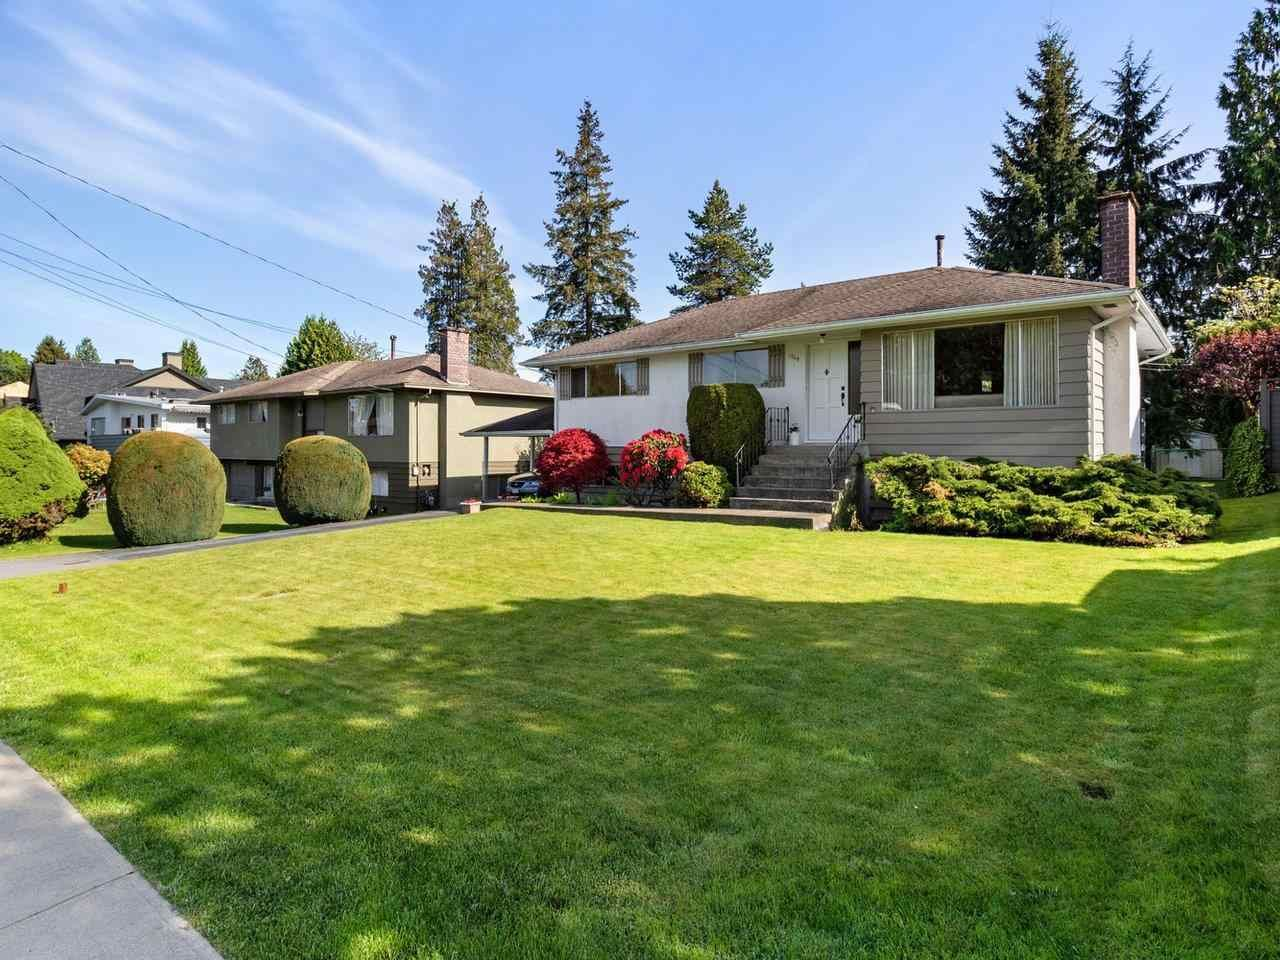 Main Photo: 1760 GROVER Avenue in Coquitlam: Central Coquitlam House for sale : MLS®# R2578658